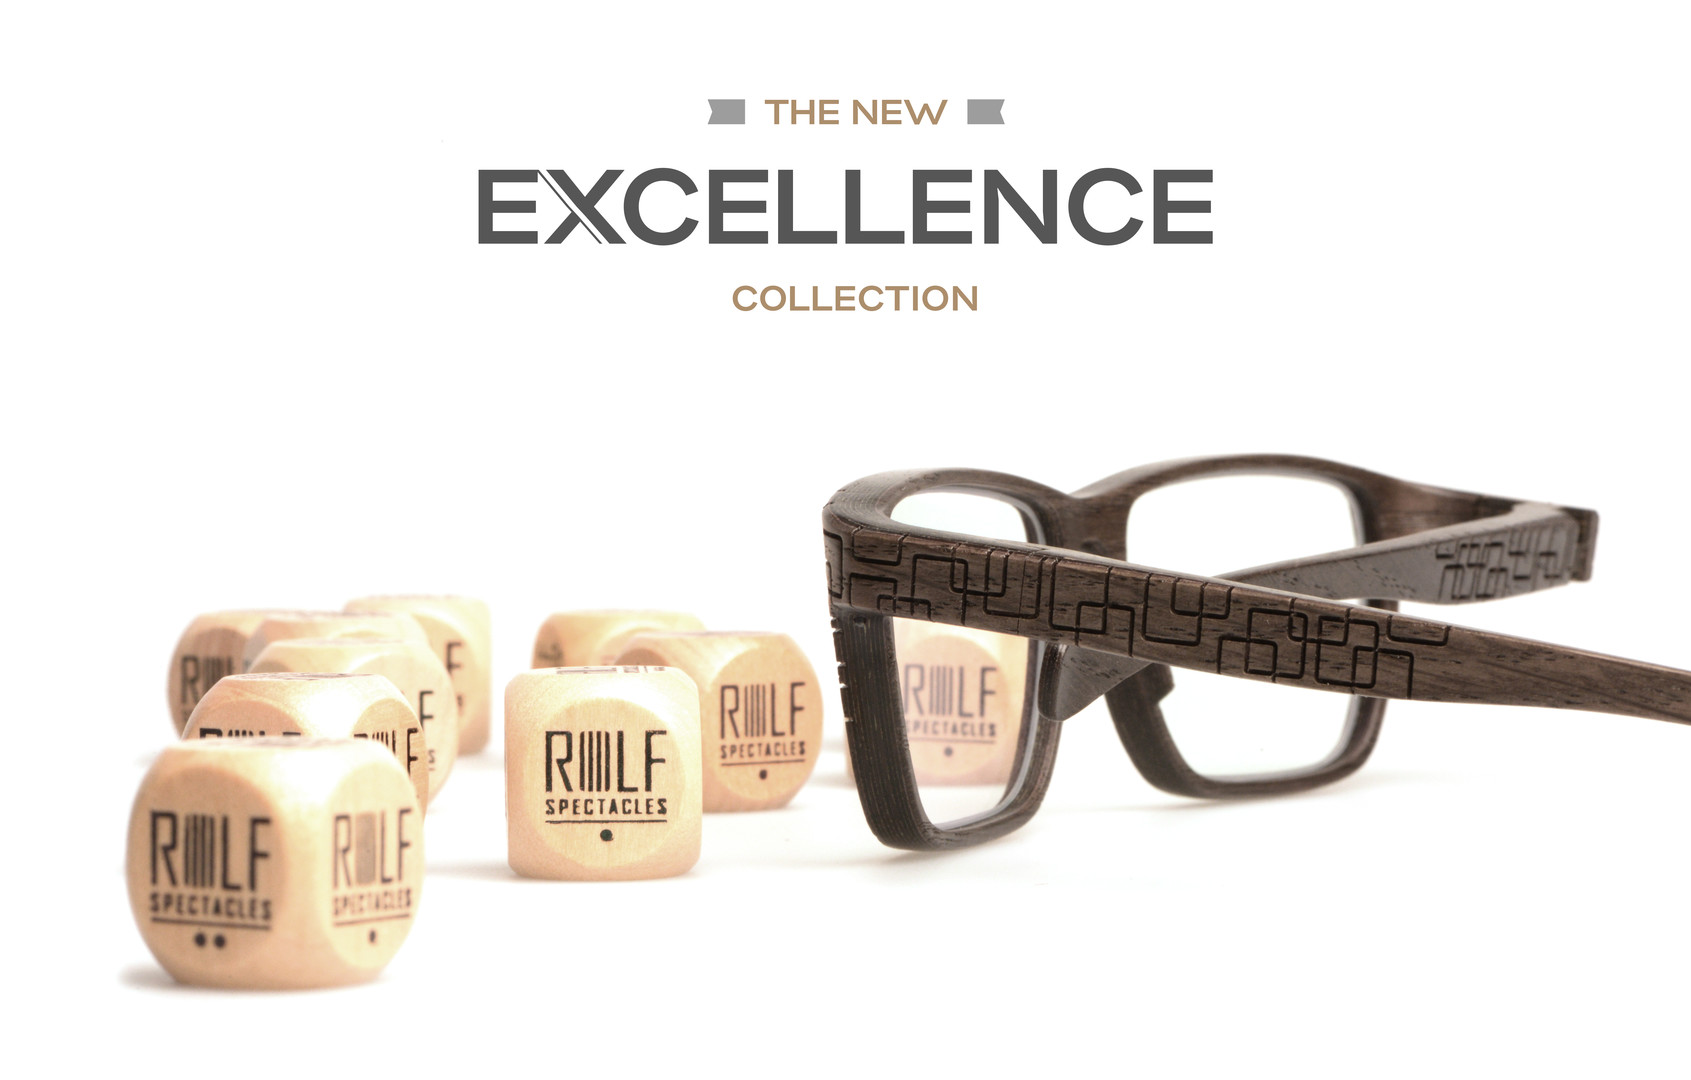 ROLF Spectacles - The new excellence collection